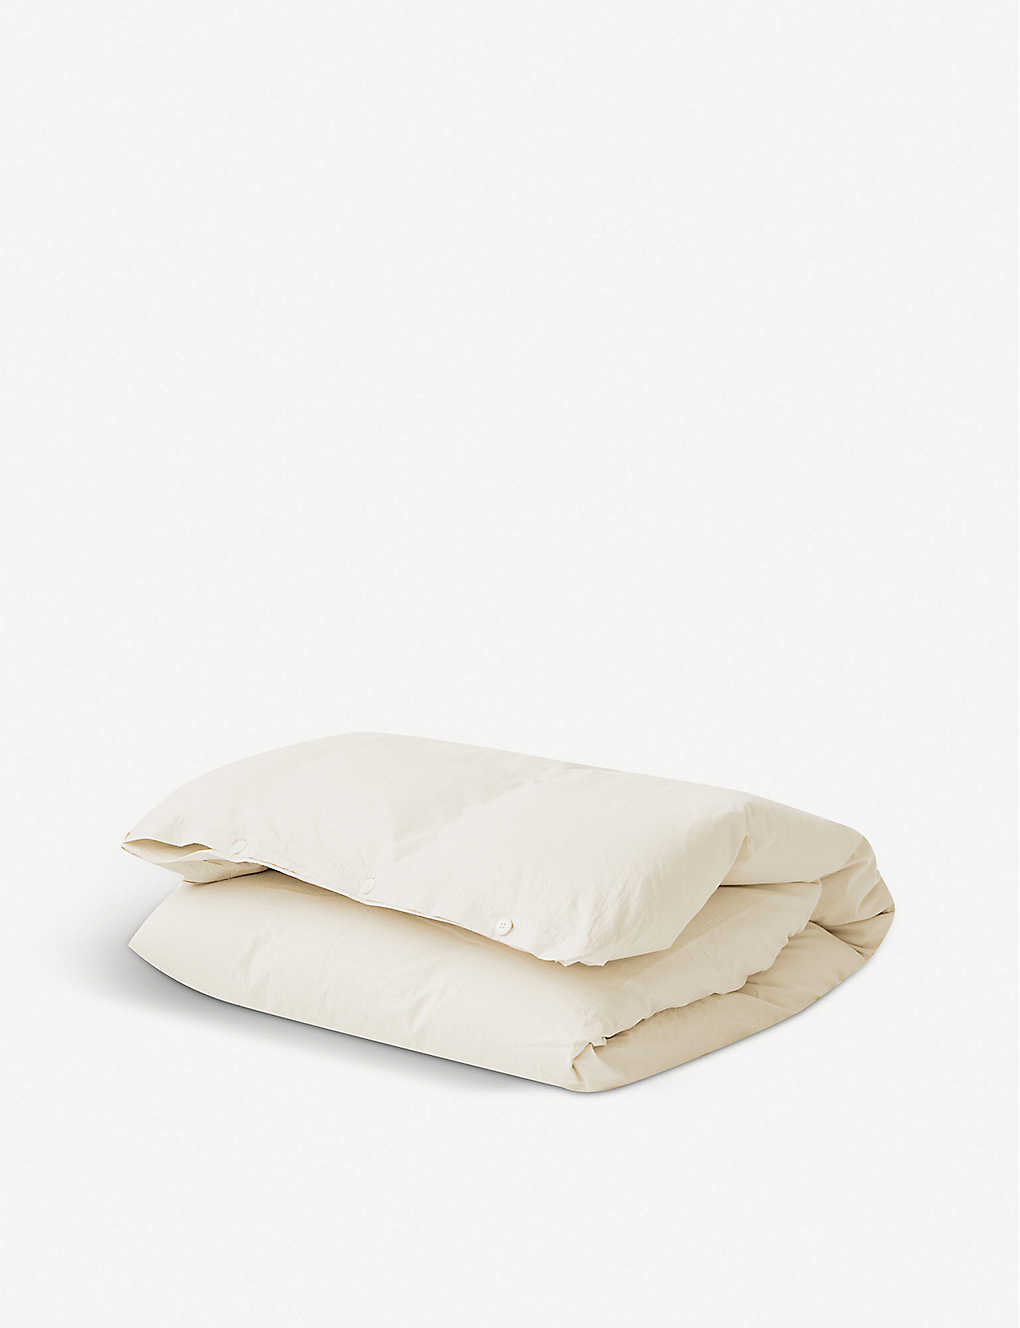 TEKLA: Single organic cotton duvet cover 200cm x 140cm